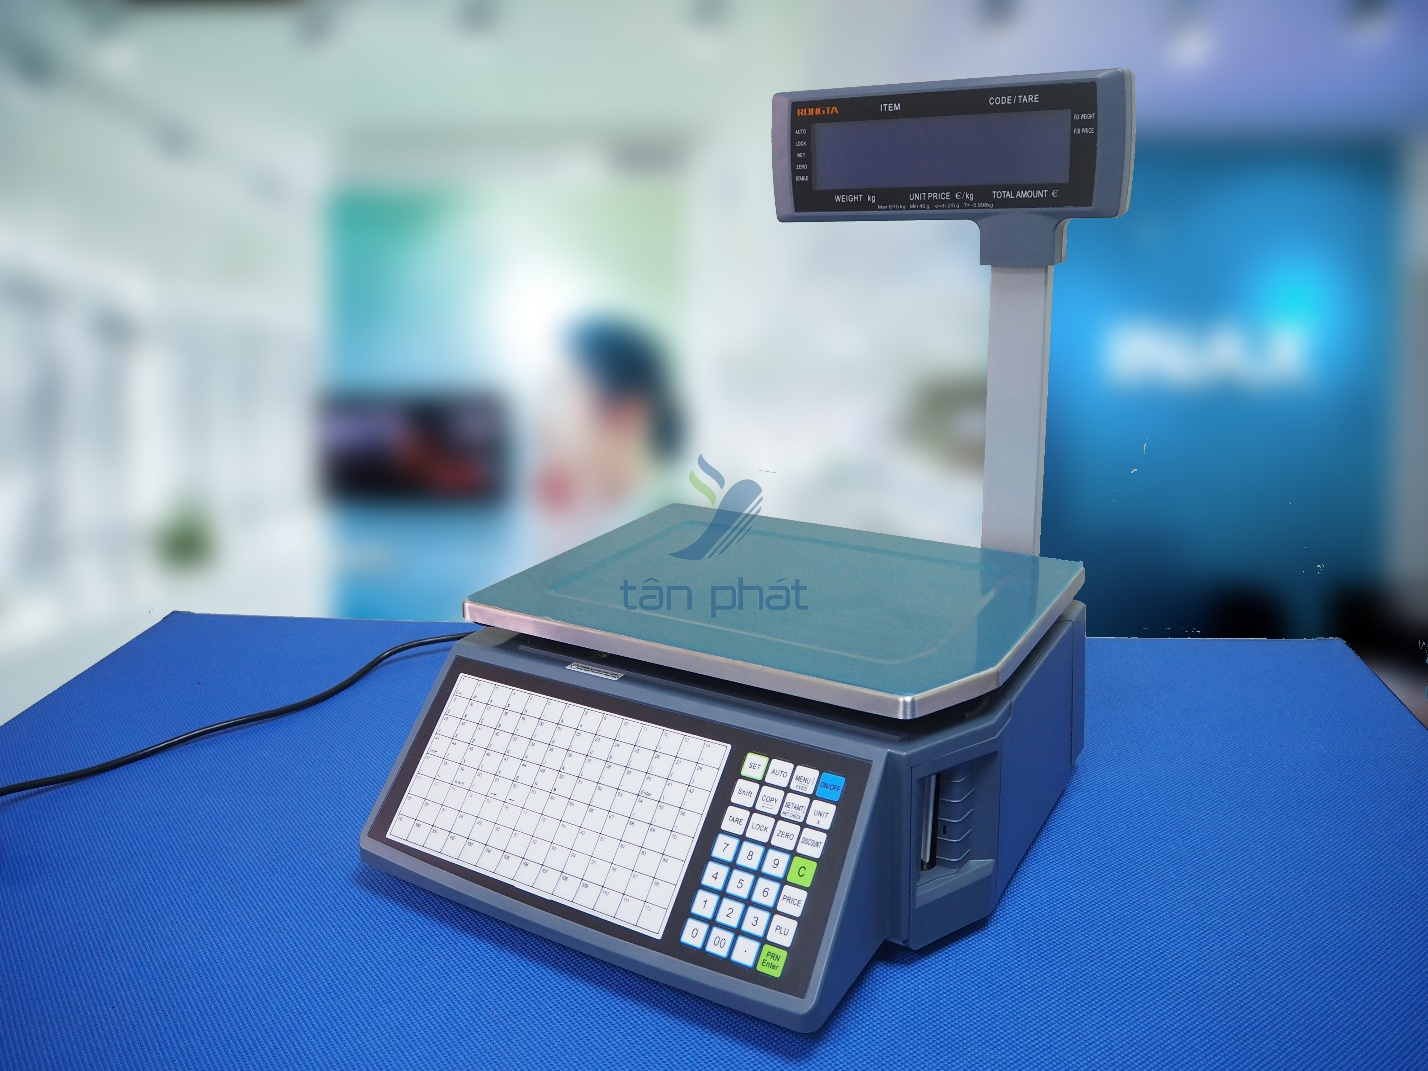 RLS1000/RLS1100 Barcode Label Scale Suppliers,smart RLS1000 ...